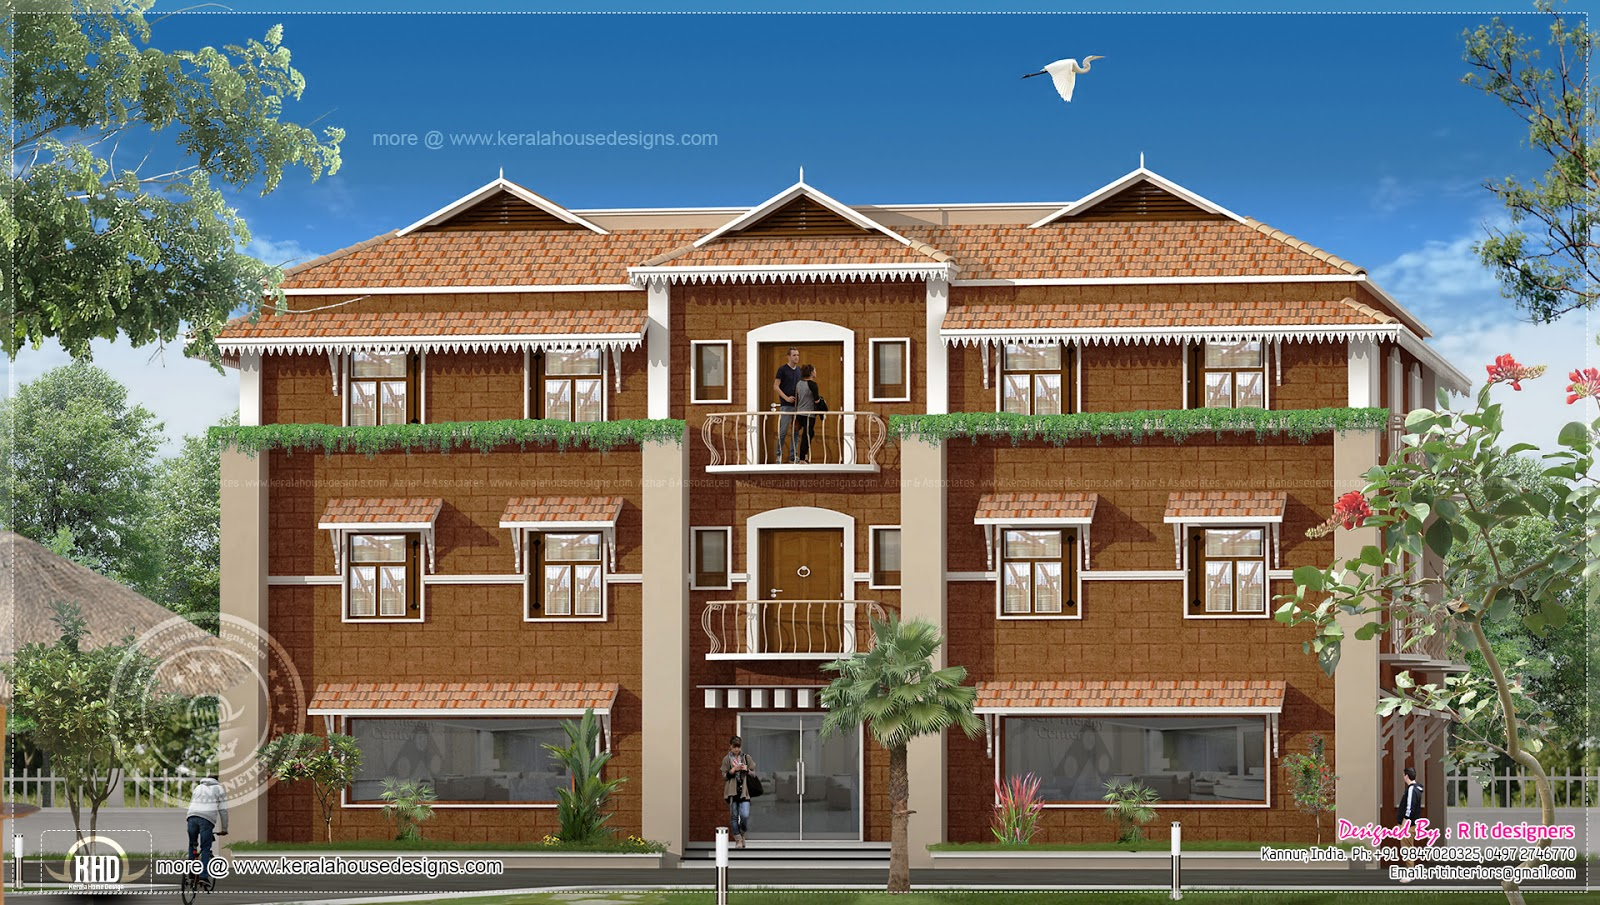 Duplex house elevation design in kerala kerala home for Duplex home plan design